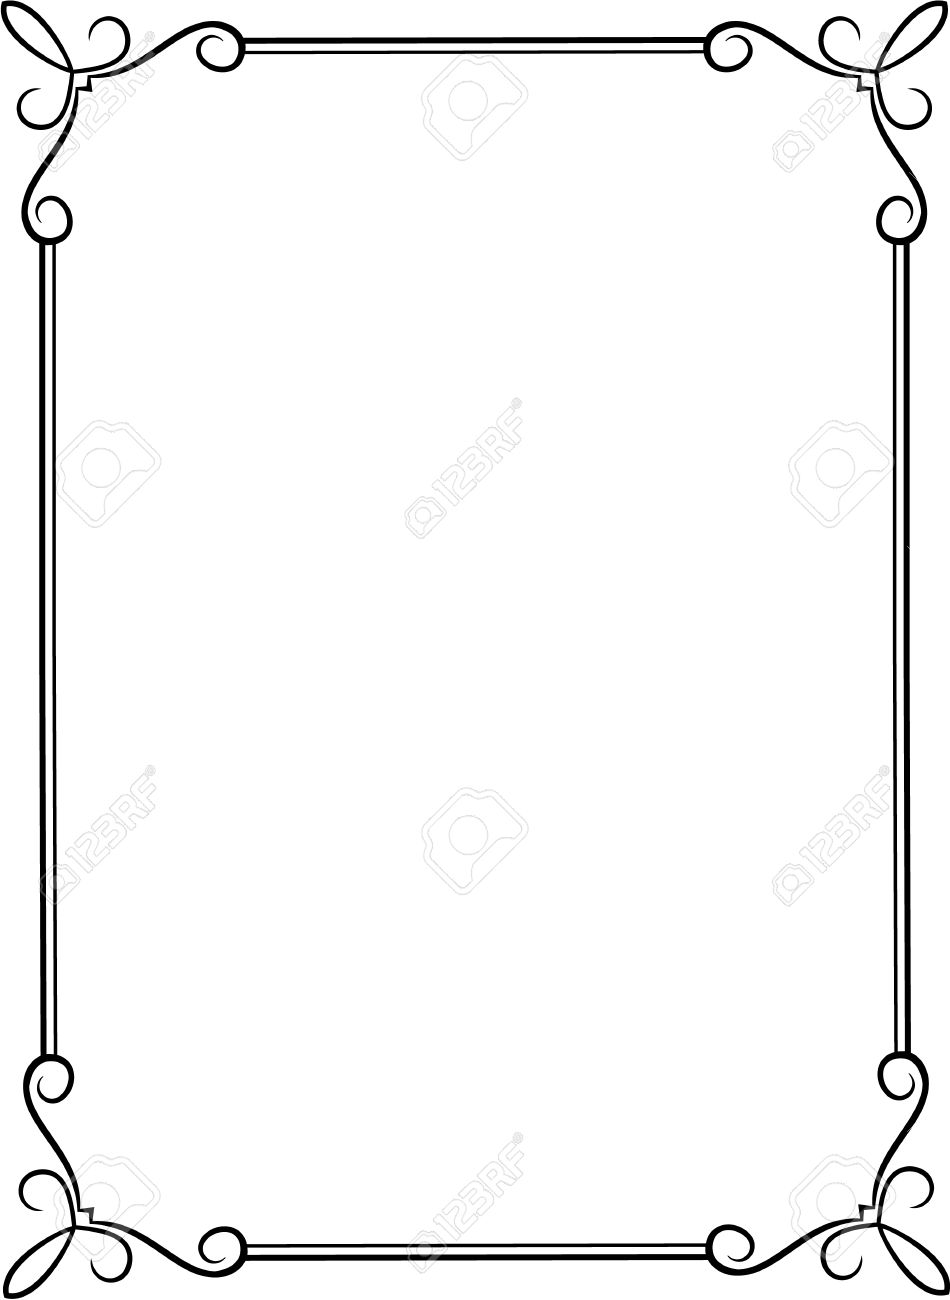 Simple Black Frame With Decorative Corners Royalty Free Cliparts